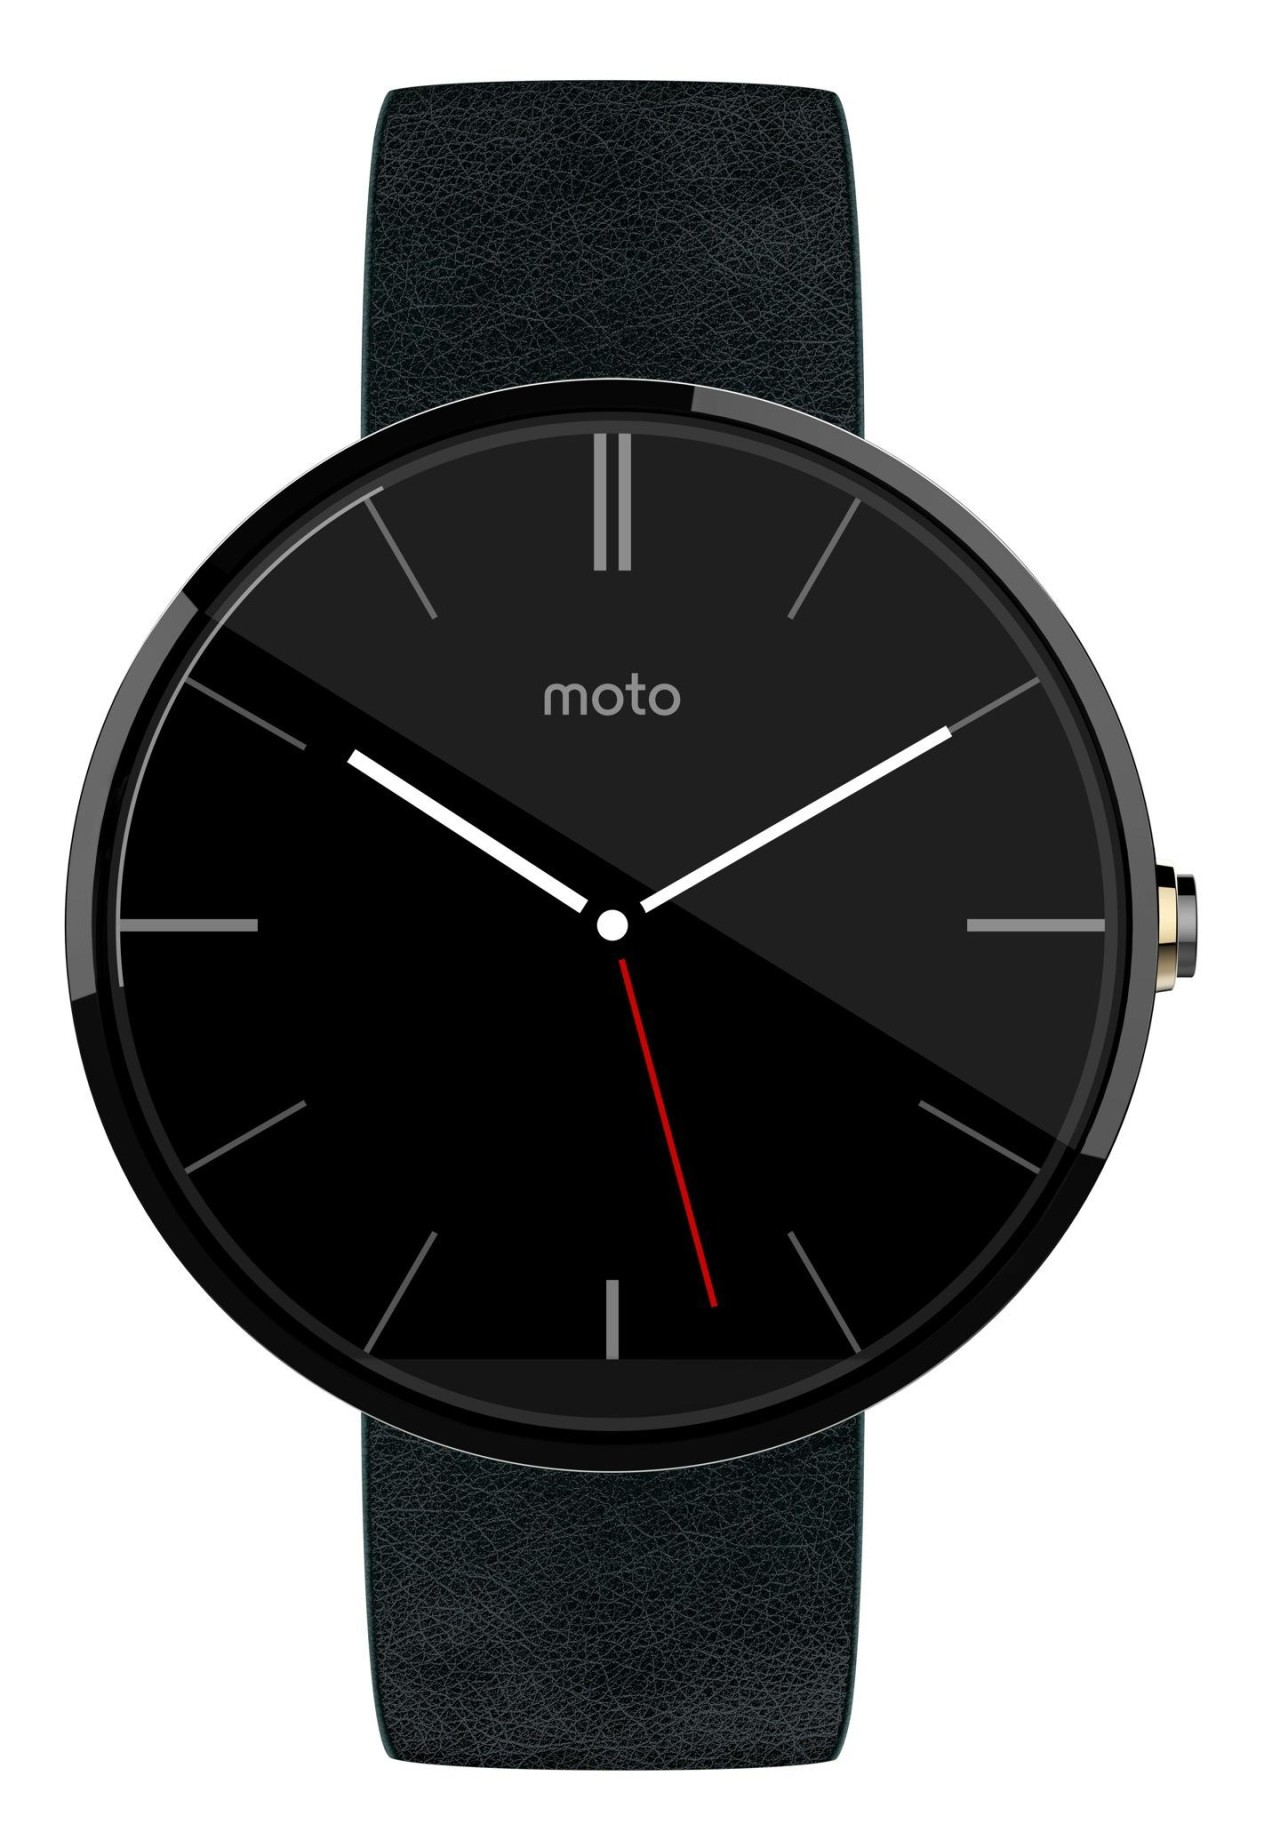 Moto 360 Press Images 5 1280x1840 - The Moto 360 is now available for $250